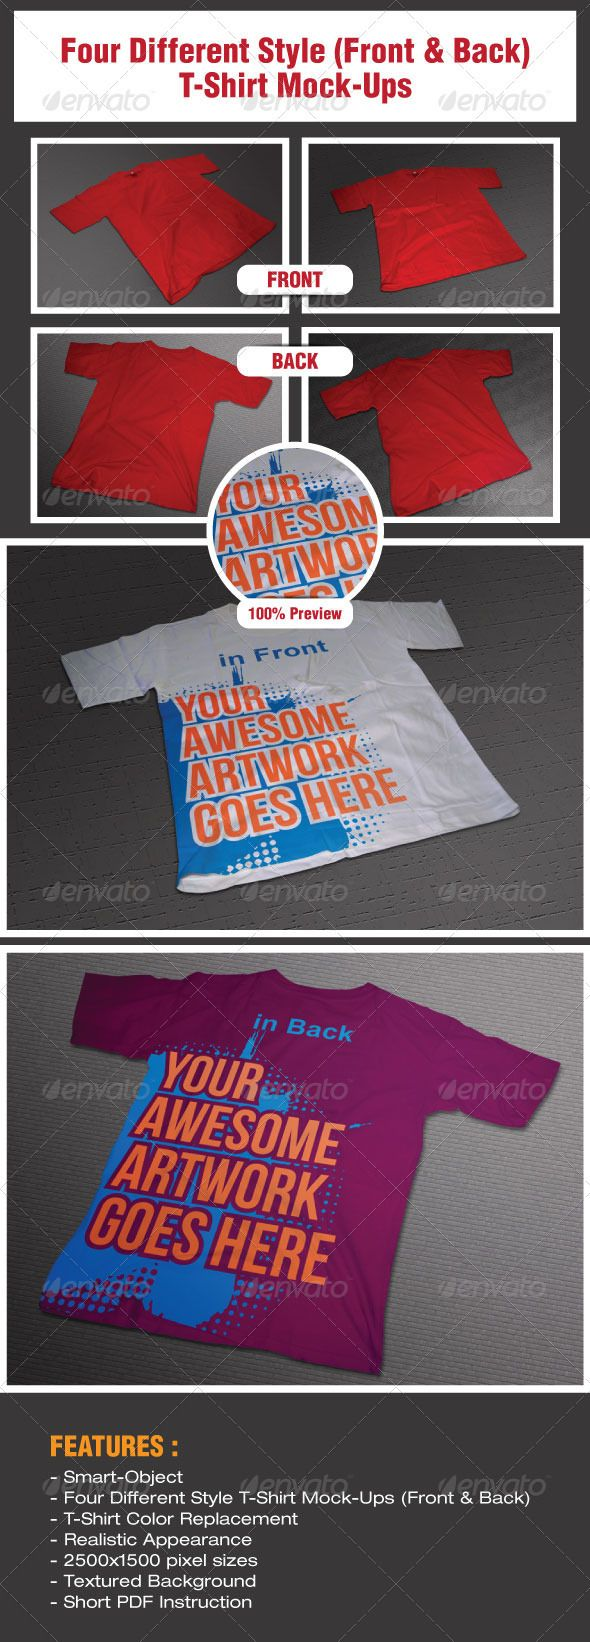 Scalable t shirt mockups more info - Four Different Style T Shirt Mock Ups